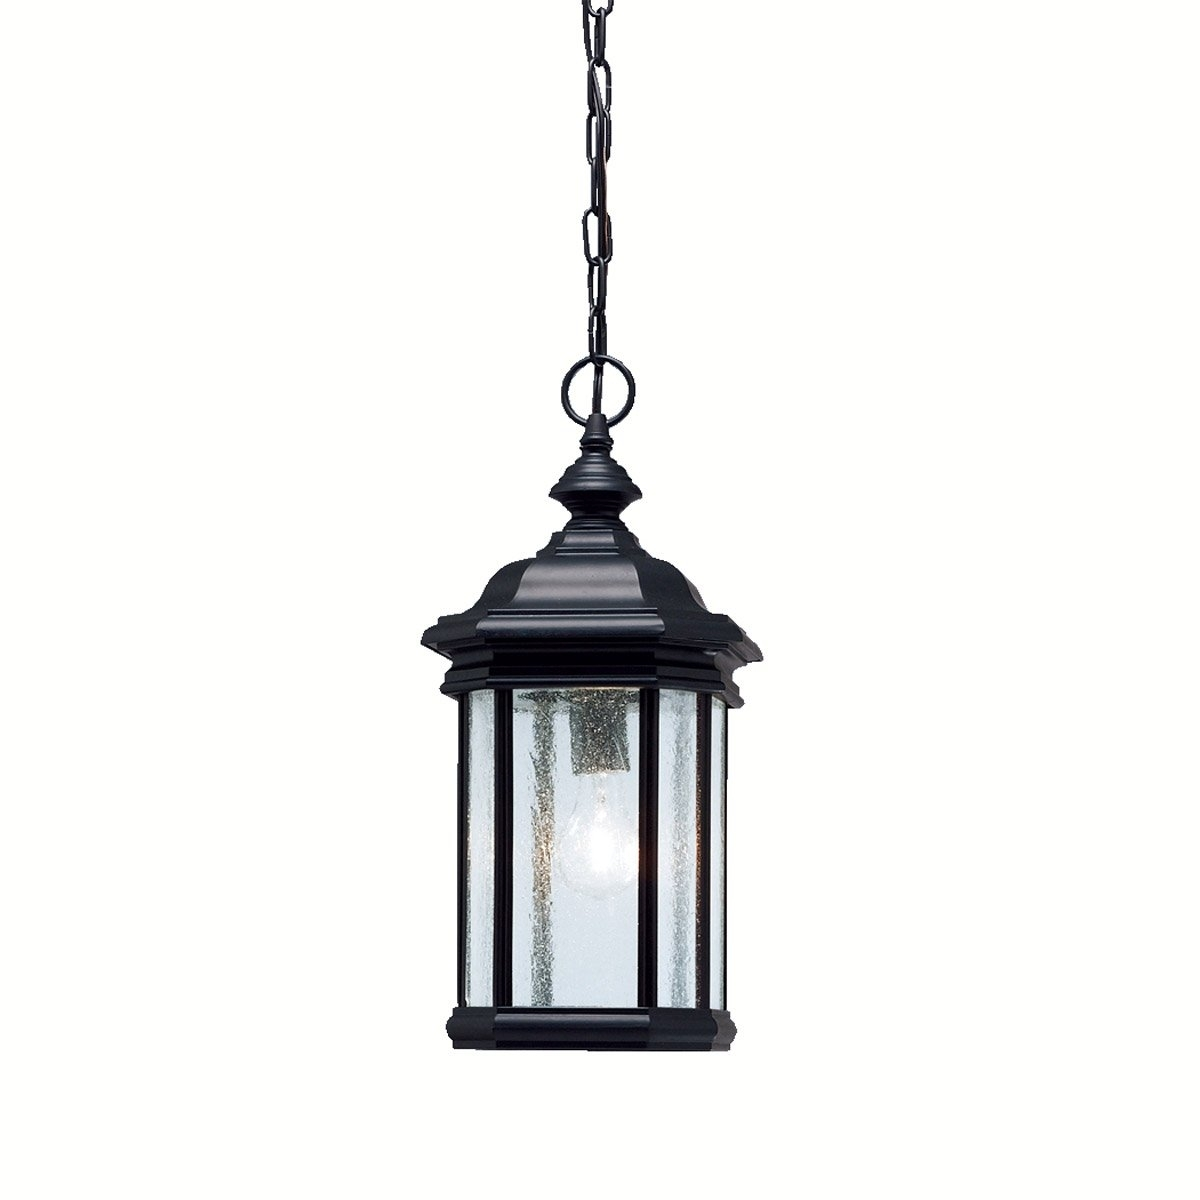 Kichler Lighting 9810Bk Kirkwood 1 Light 9 Inch Black Outdoor Inside Outdoor Pendant Kichler Lighting (View 8 of 15)